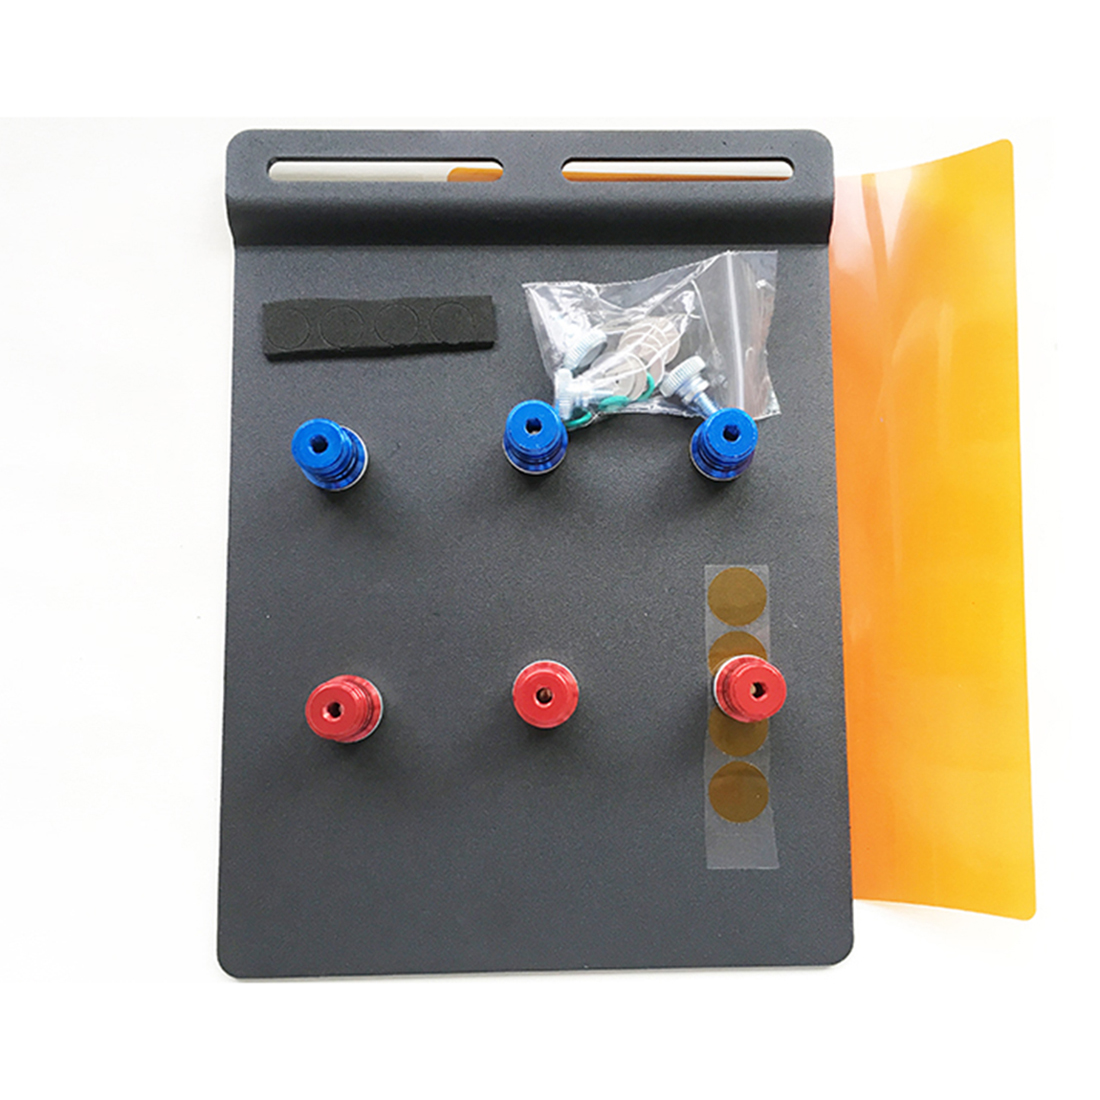 PCB Circuit Board Mainboard Maintenance Tool Electronic Maintenance Platform Magnetic Column For Children Educational Toys Gift